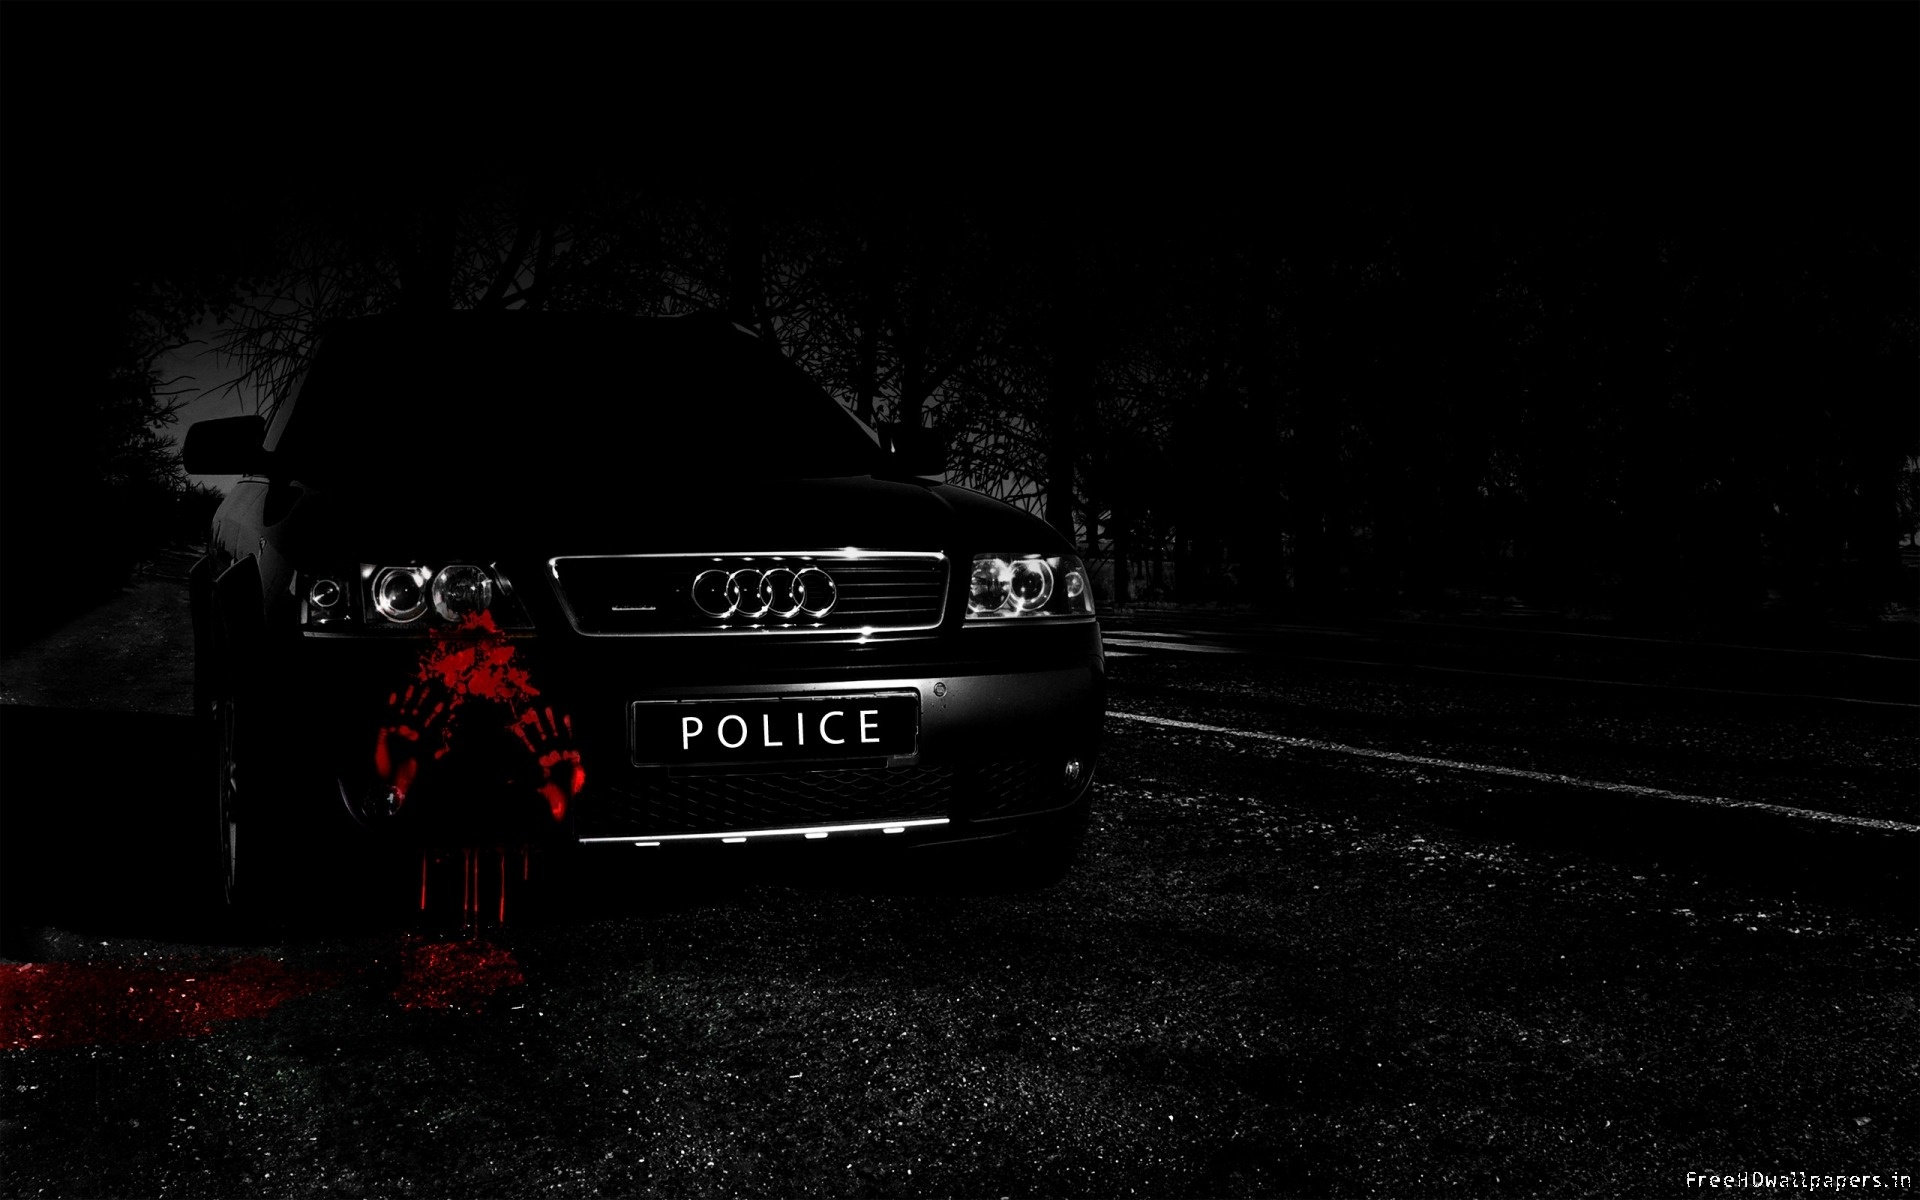 wallpapers police car hd wallpaper with resolutions 1920 1080 pixel